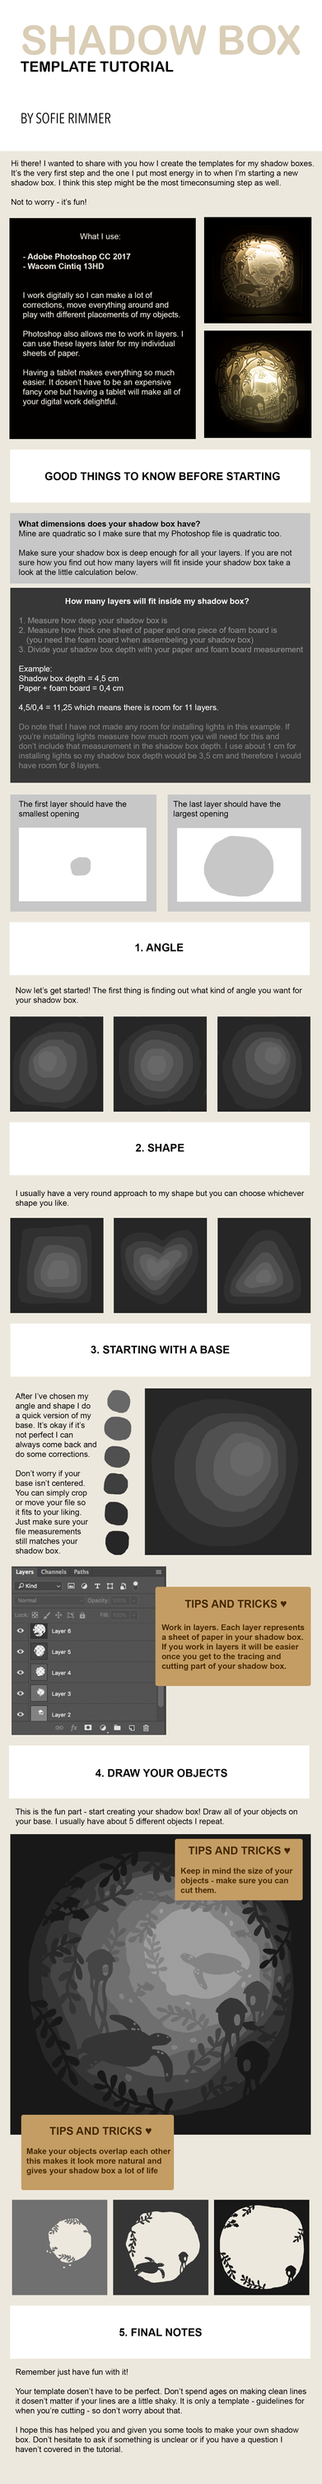 shadow box template tutorial by sofierimmer on deviantart. Black Bedroom Furniture Sets. Home Design Ideas